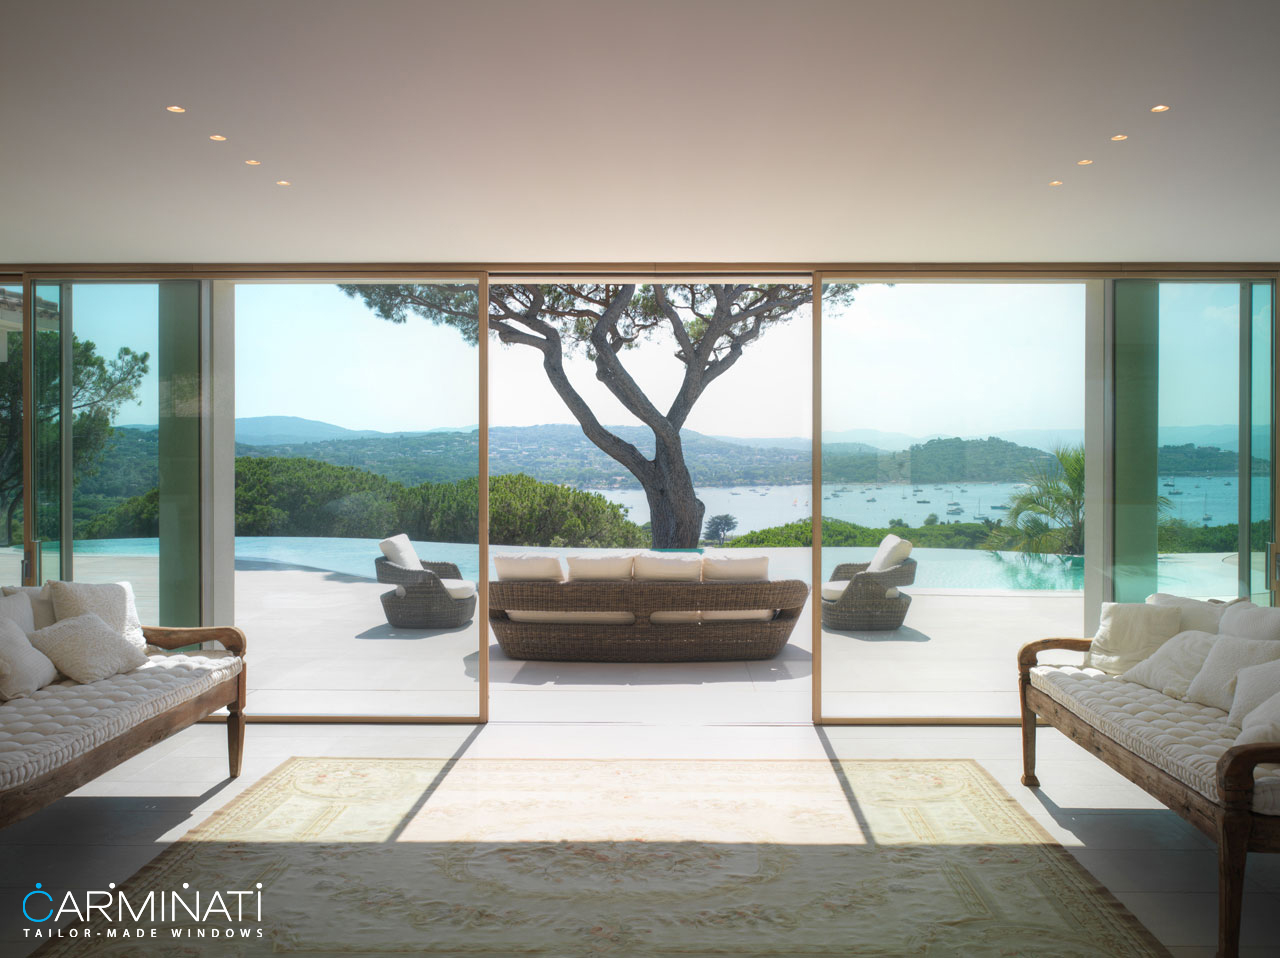 A minimal frame lift slide door system by Carminati opens this villa to the beautiful views of Saint Tropez